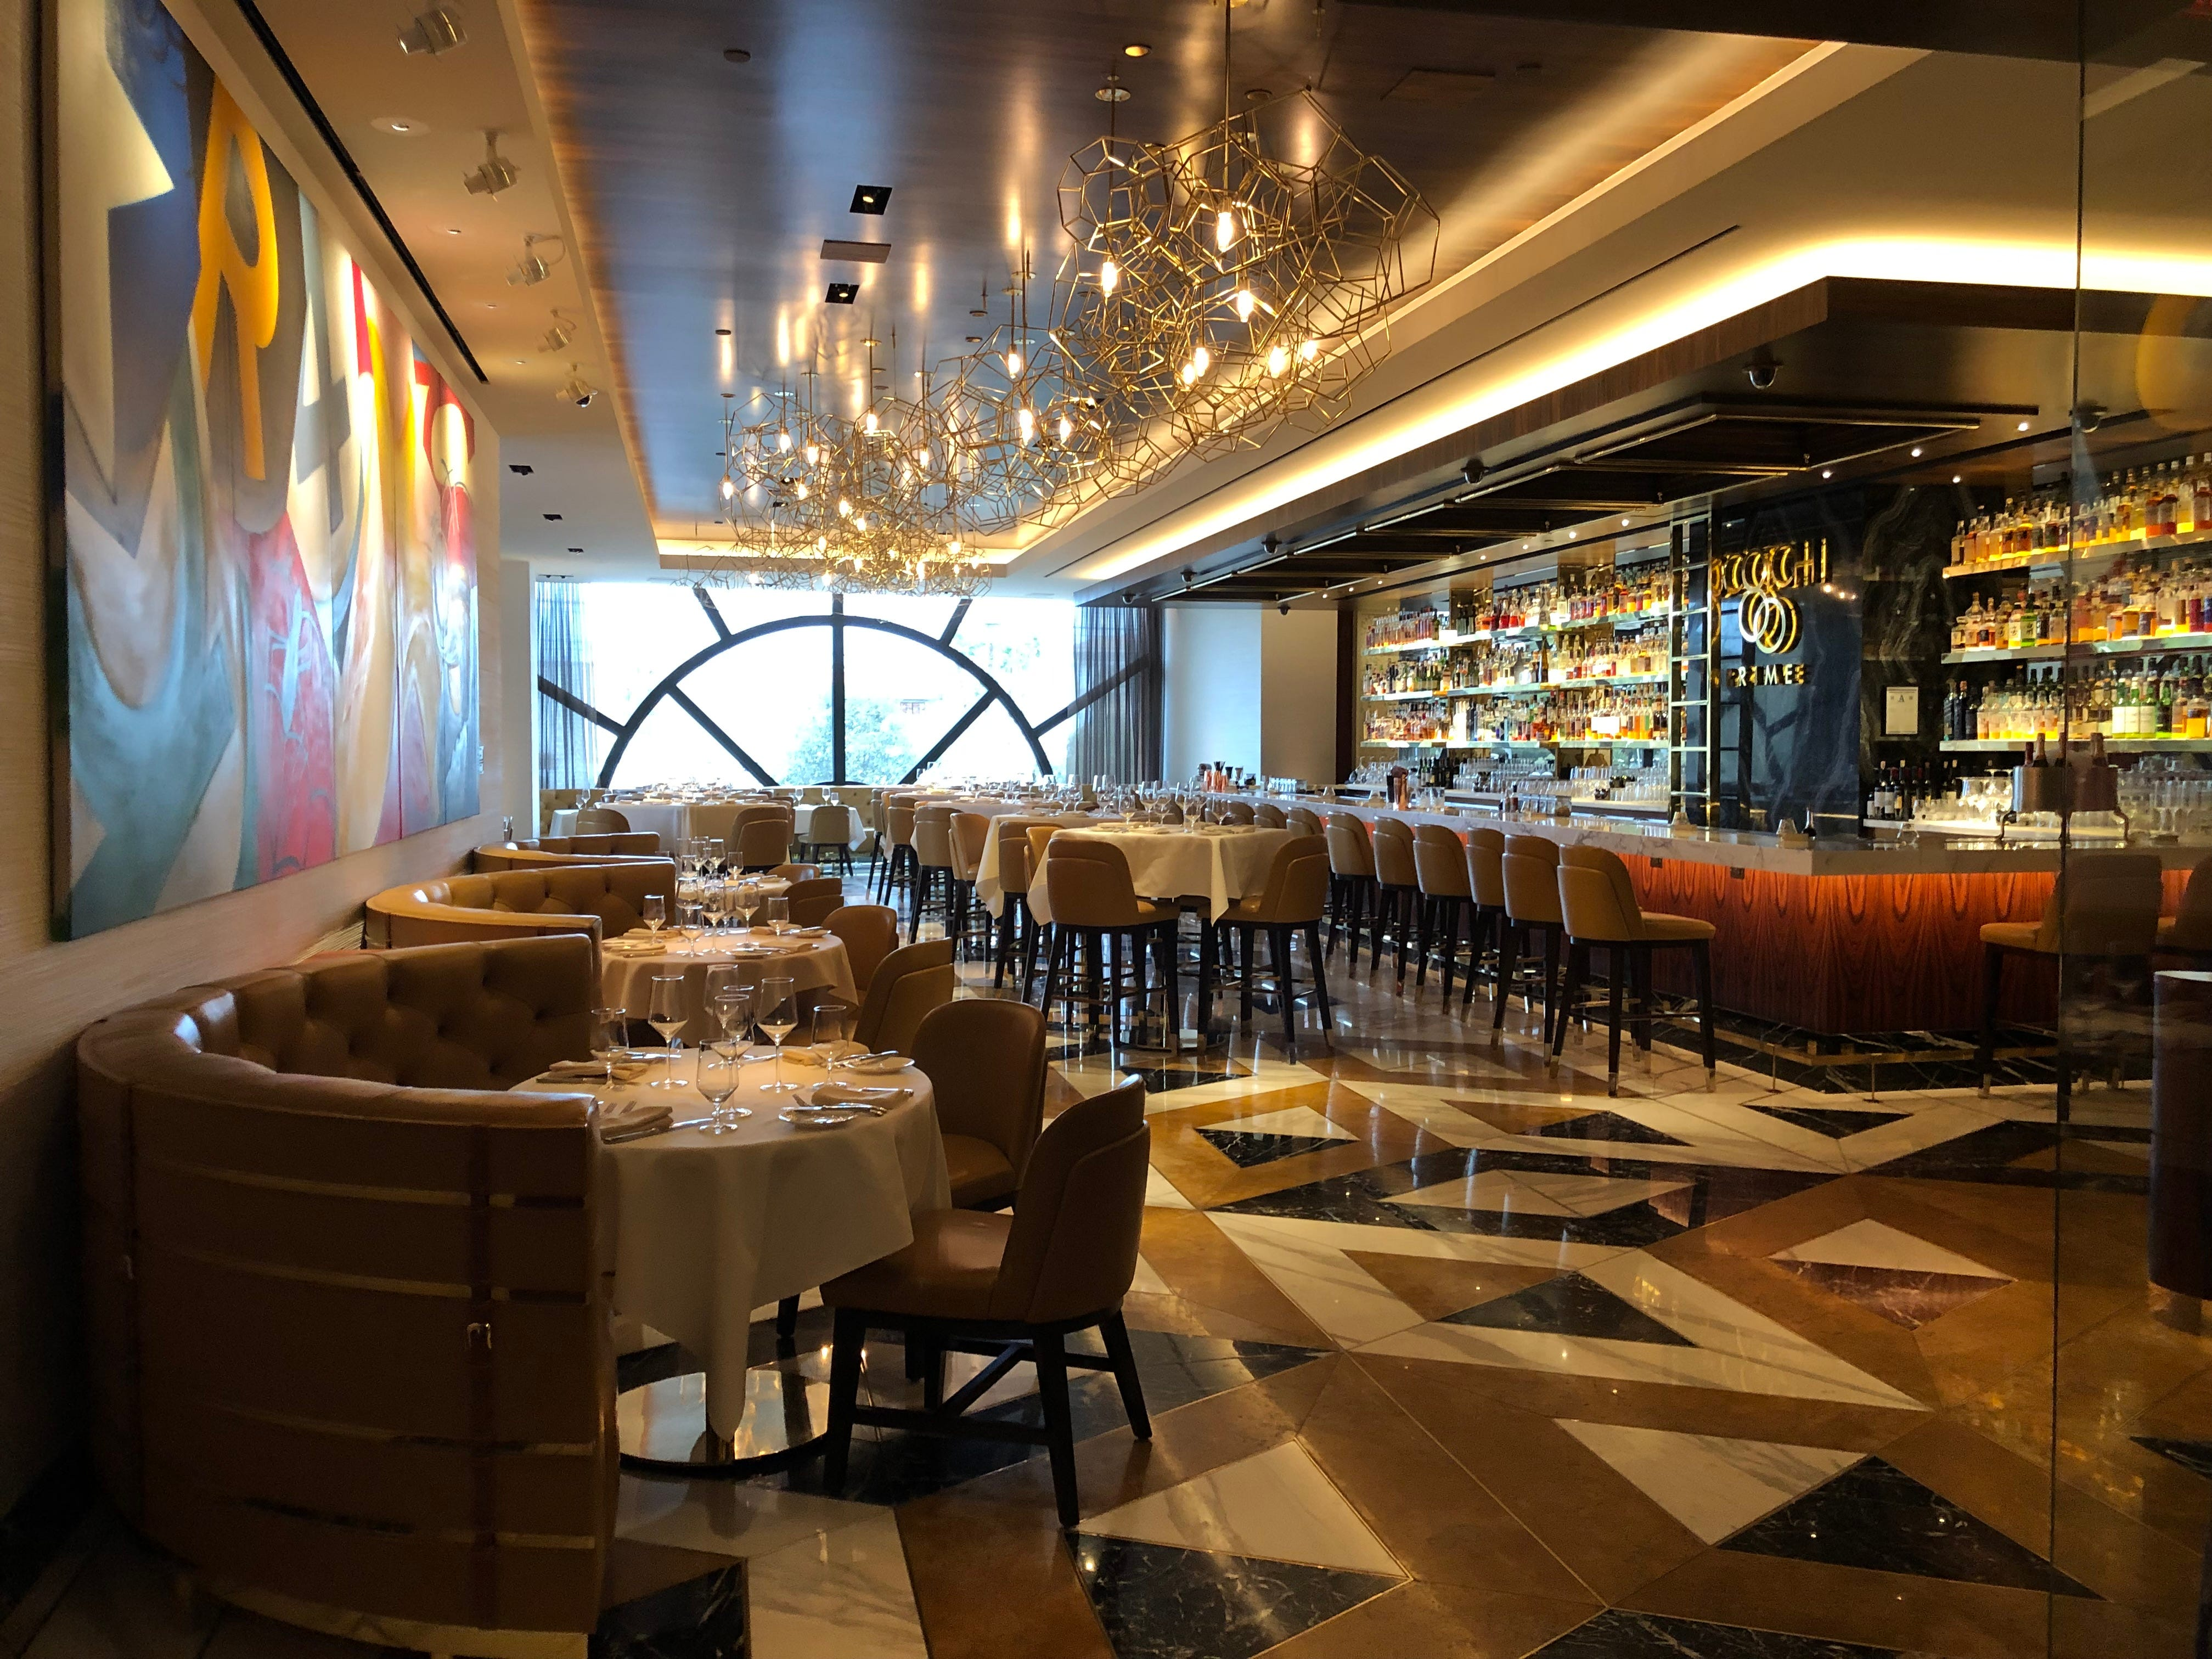 The dining room at Scotch 80 Prime steakhouse in the Palms Casino Resort in Las Vegas.